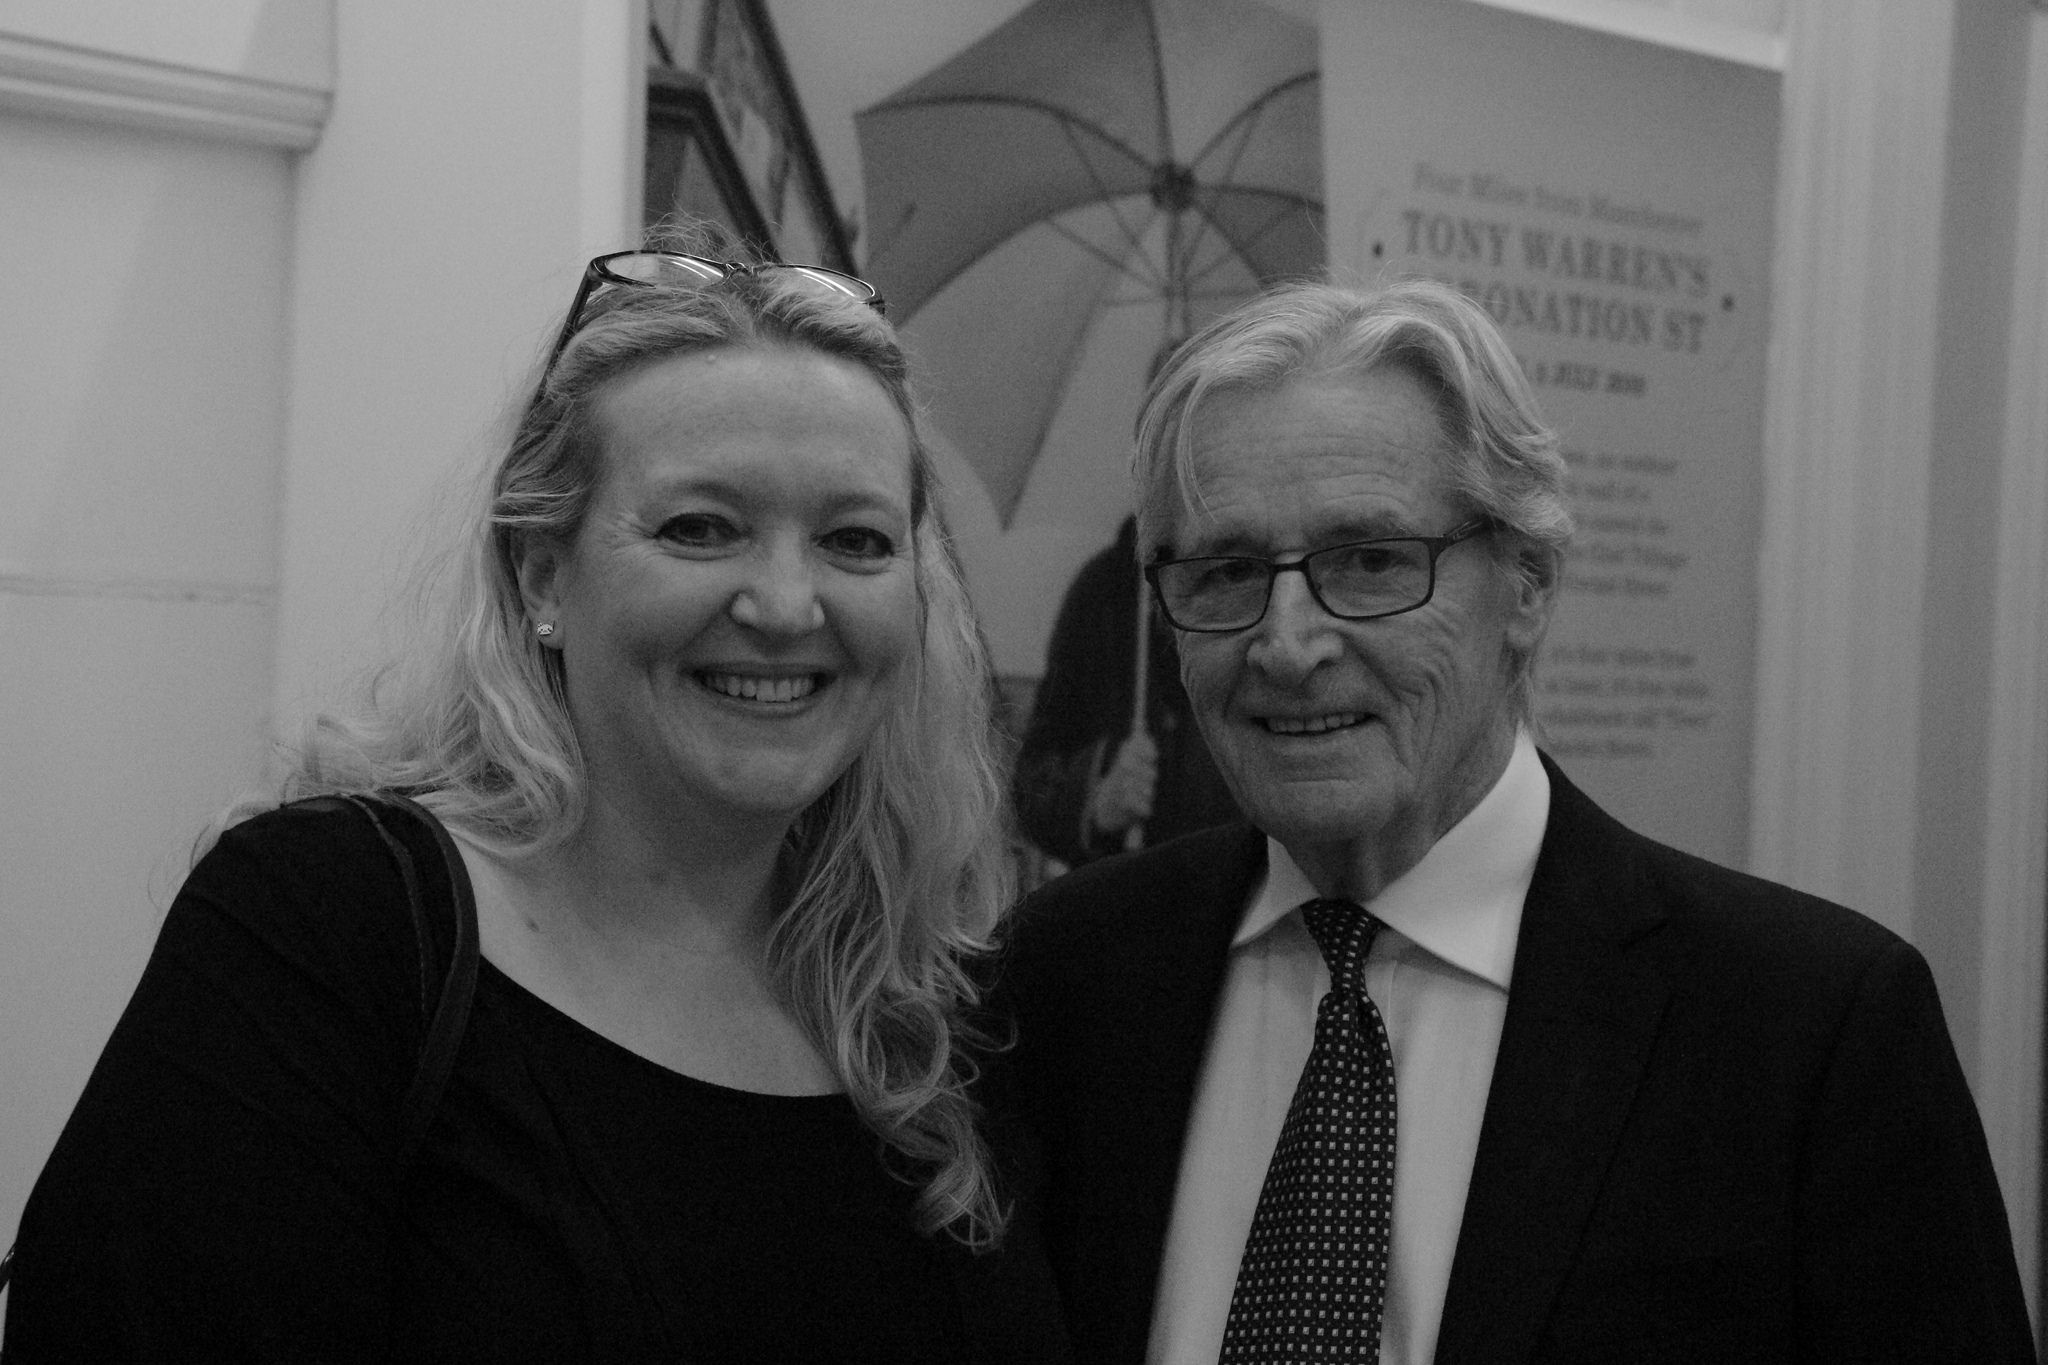 https://flic.kr/p/211yTKX | Ann-Marie Humphreys with  William Roache at the opening of Four Miles from Manchester; Tony Warren's Coronation Street exhibition at Salford Museum & Art Gallery. | taken at the opening of Four Miles from Manchester; Tony Warren's Coronation Street exhibition at Salford Museum & Art Gallery